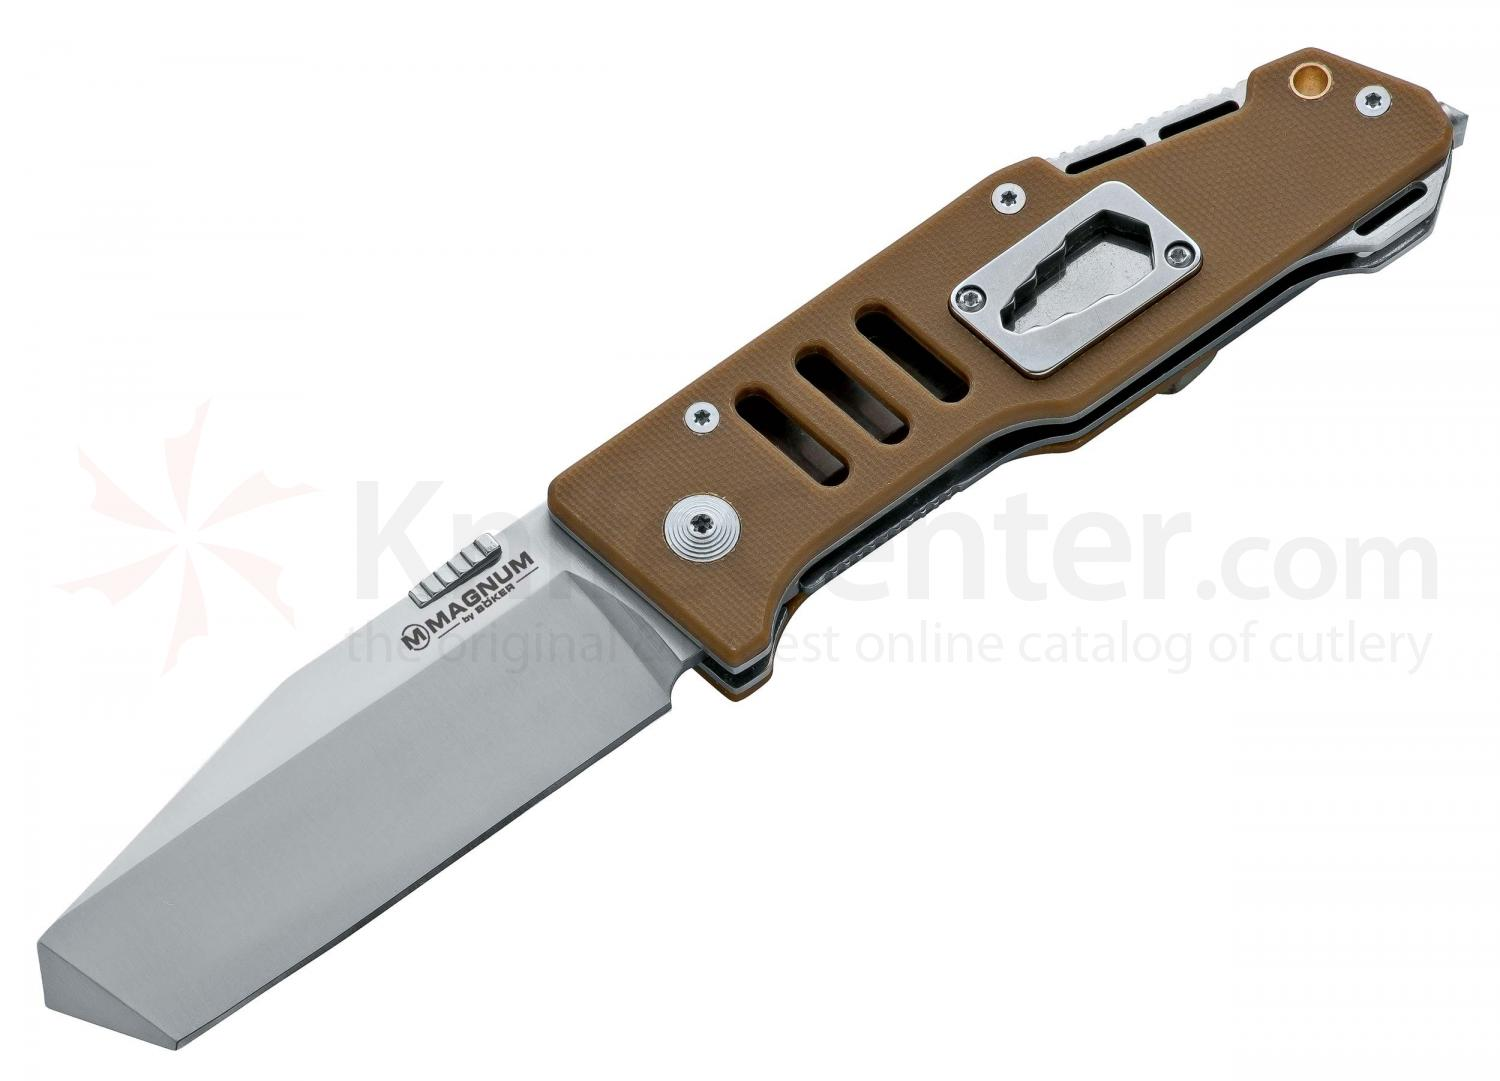 Boker Magnum Timberman Folding Knife 3-3/8 inch Blade, Besh Wedge Tip, Coyote Brown G10 Handles (01RY144)